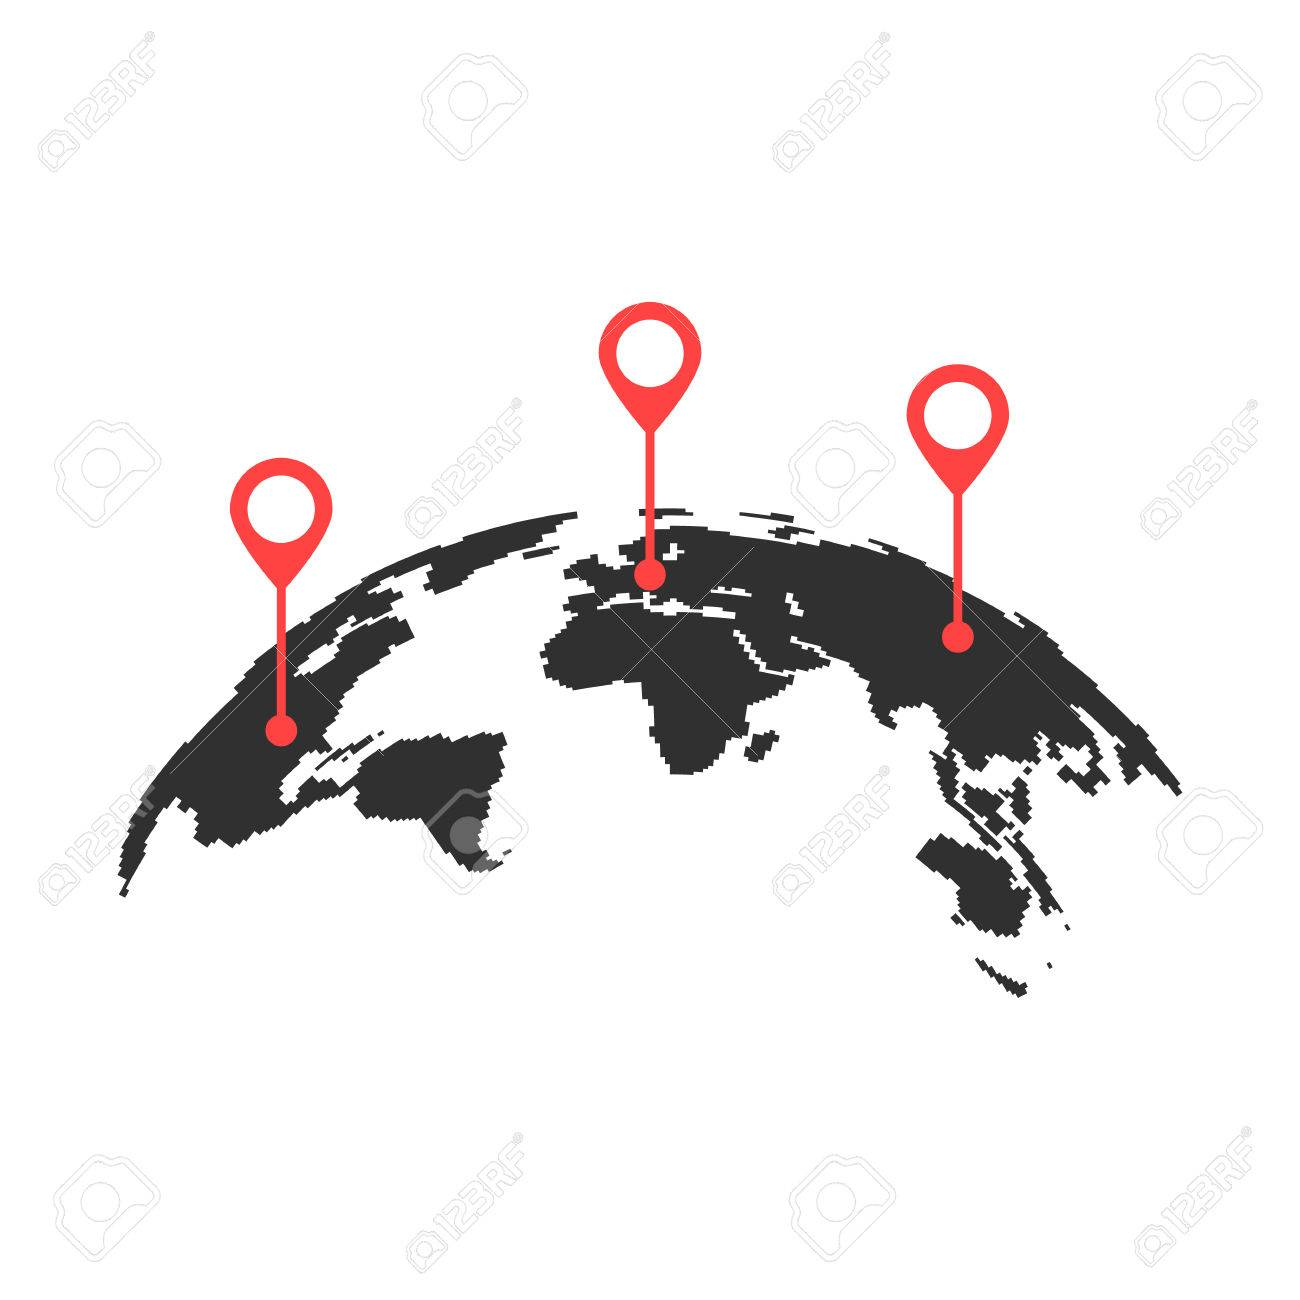 Curved world map with red pins royalty free cliparts vectors and curved world map with red pins stock vector 75989863 gumiabroncs Image collections